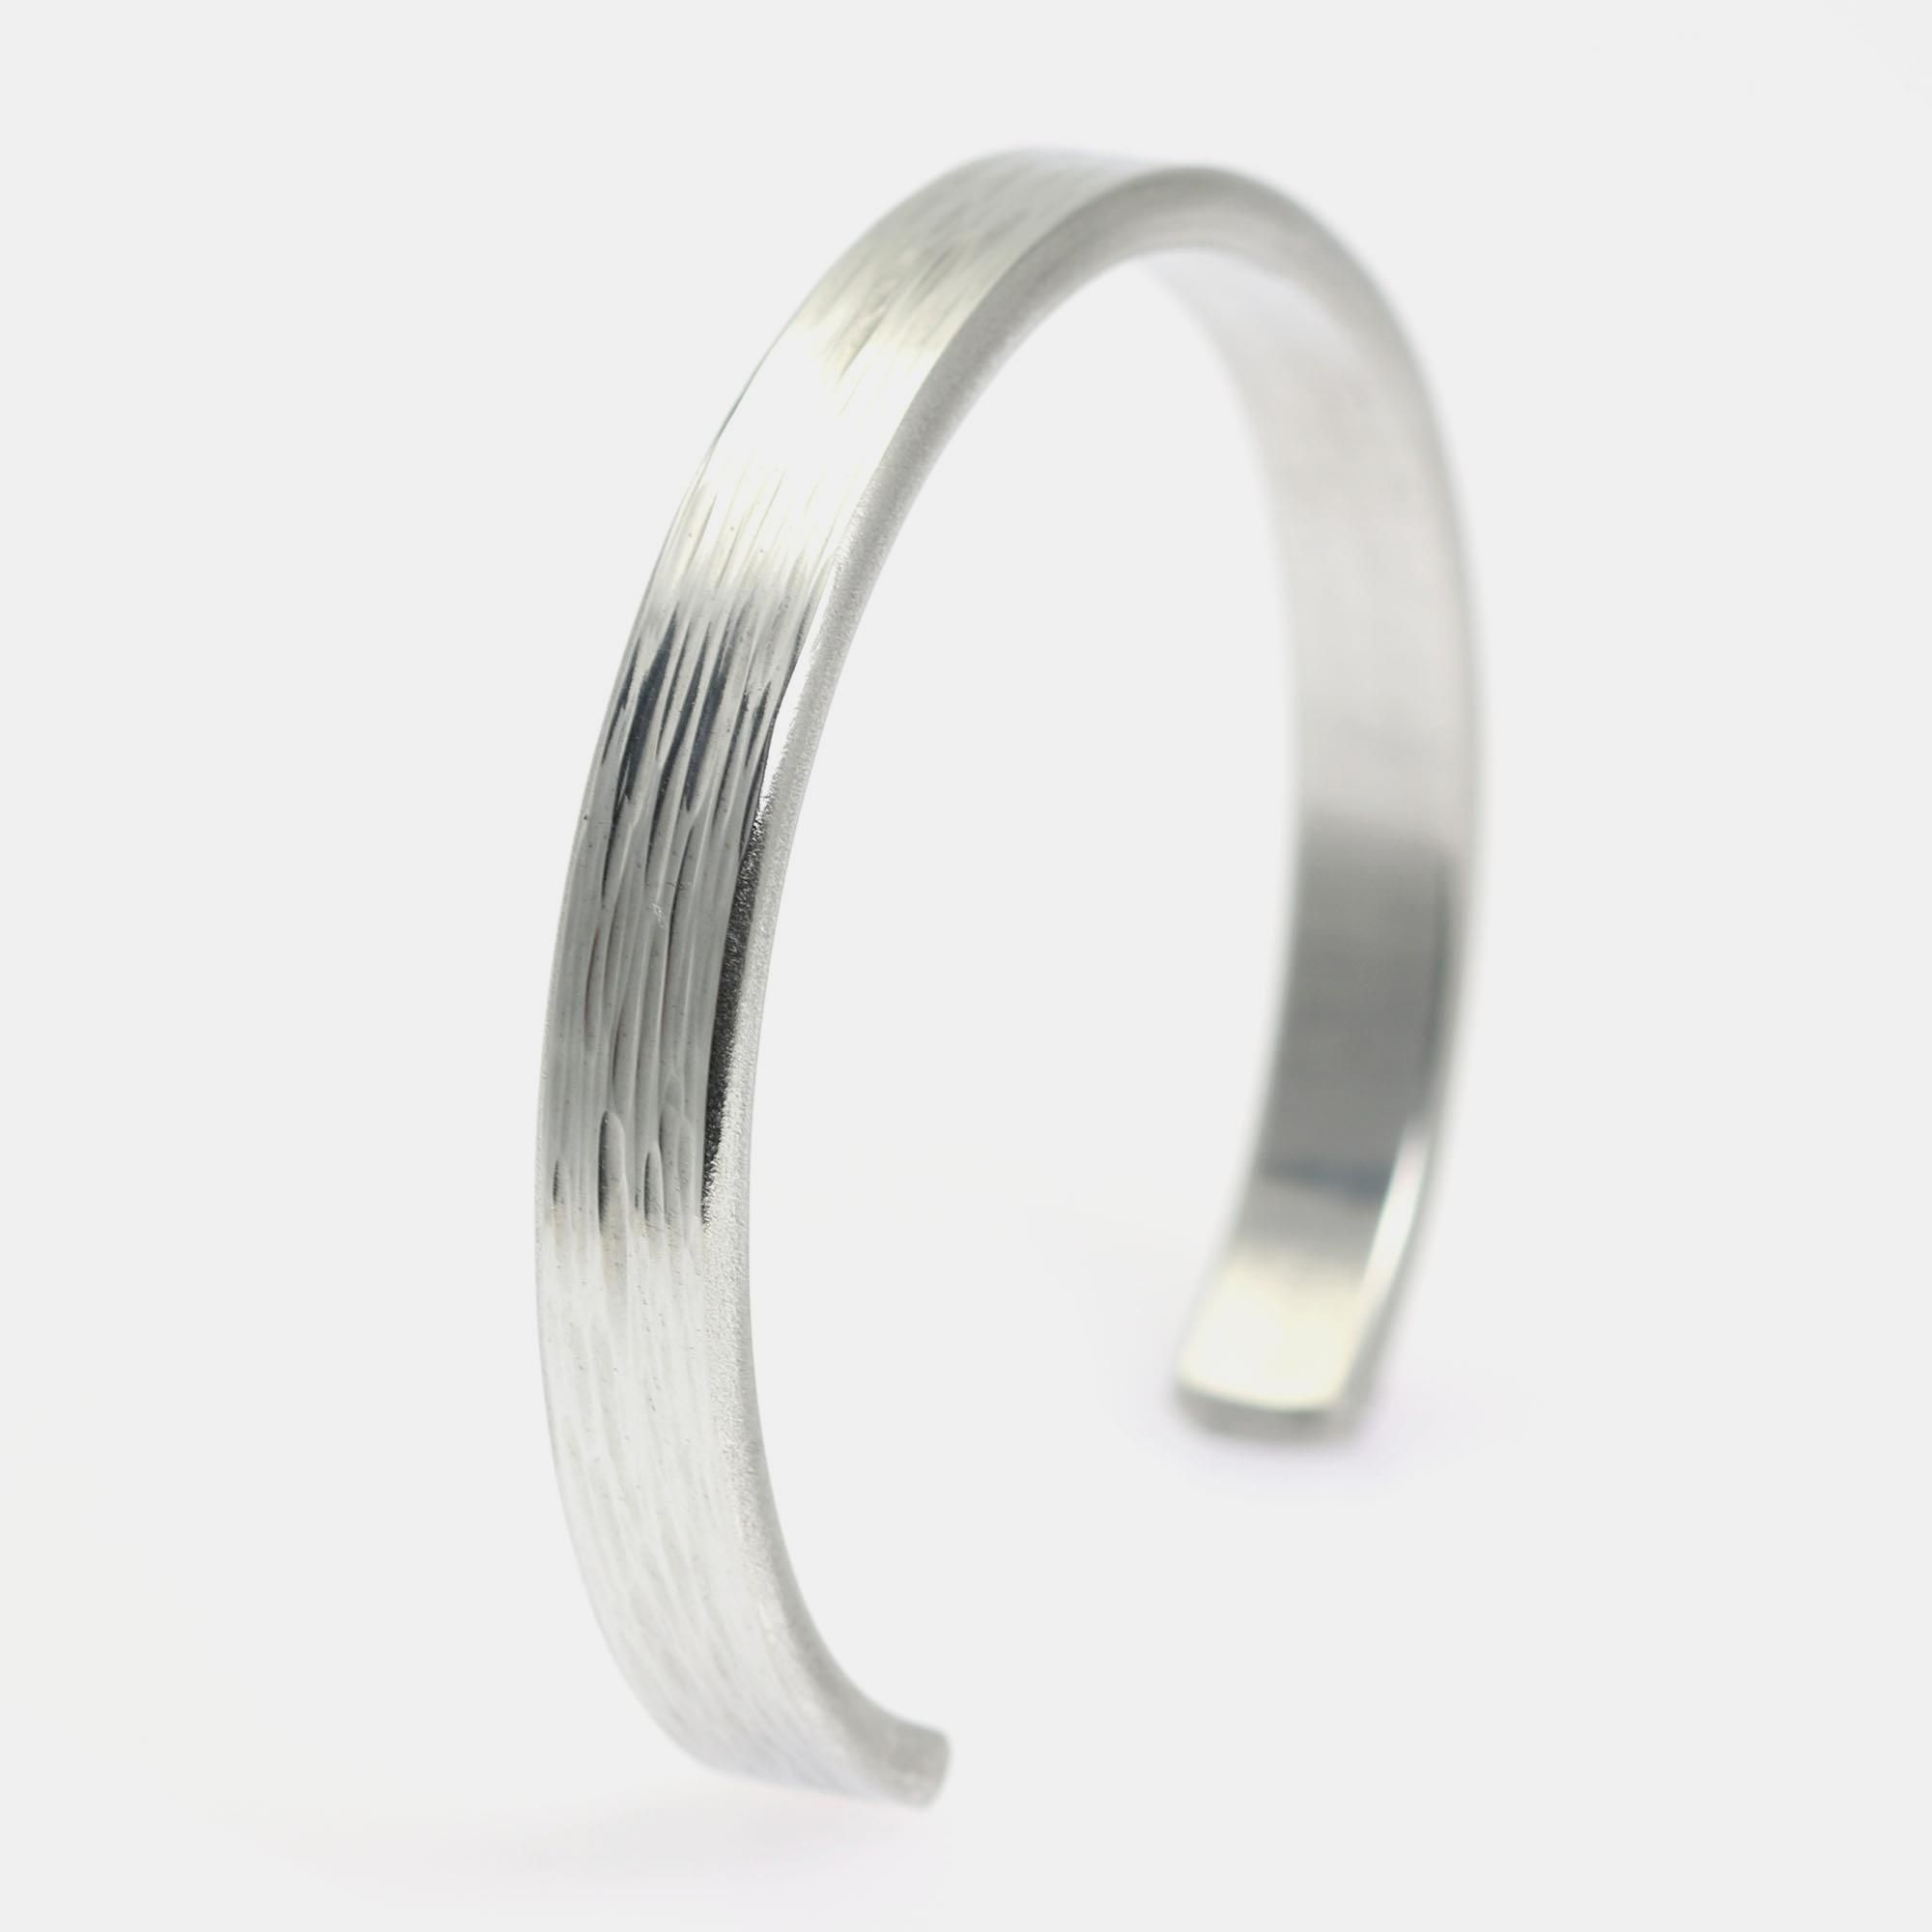 New awesome mm thin bark silver tone cuff bracelet offered by